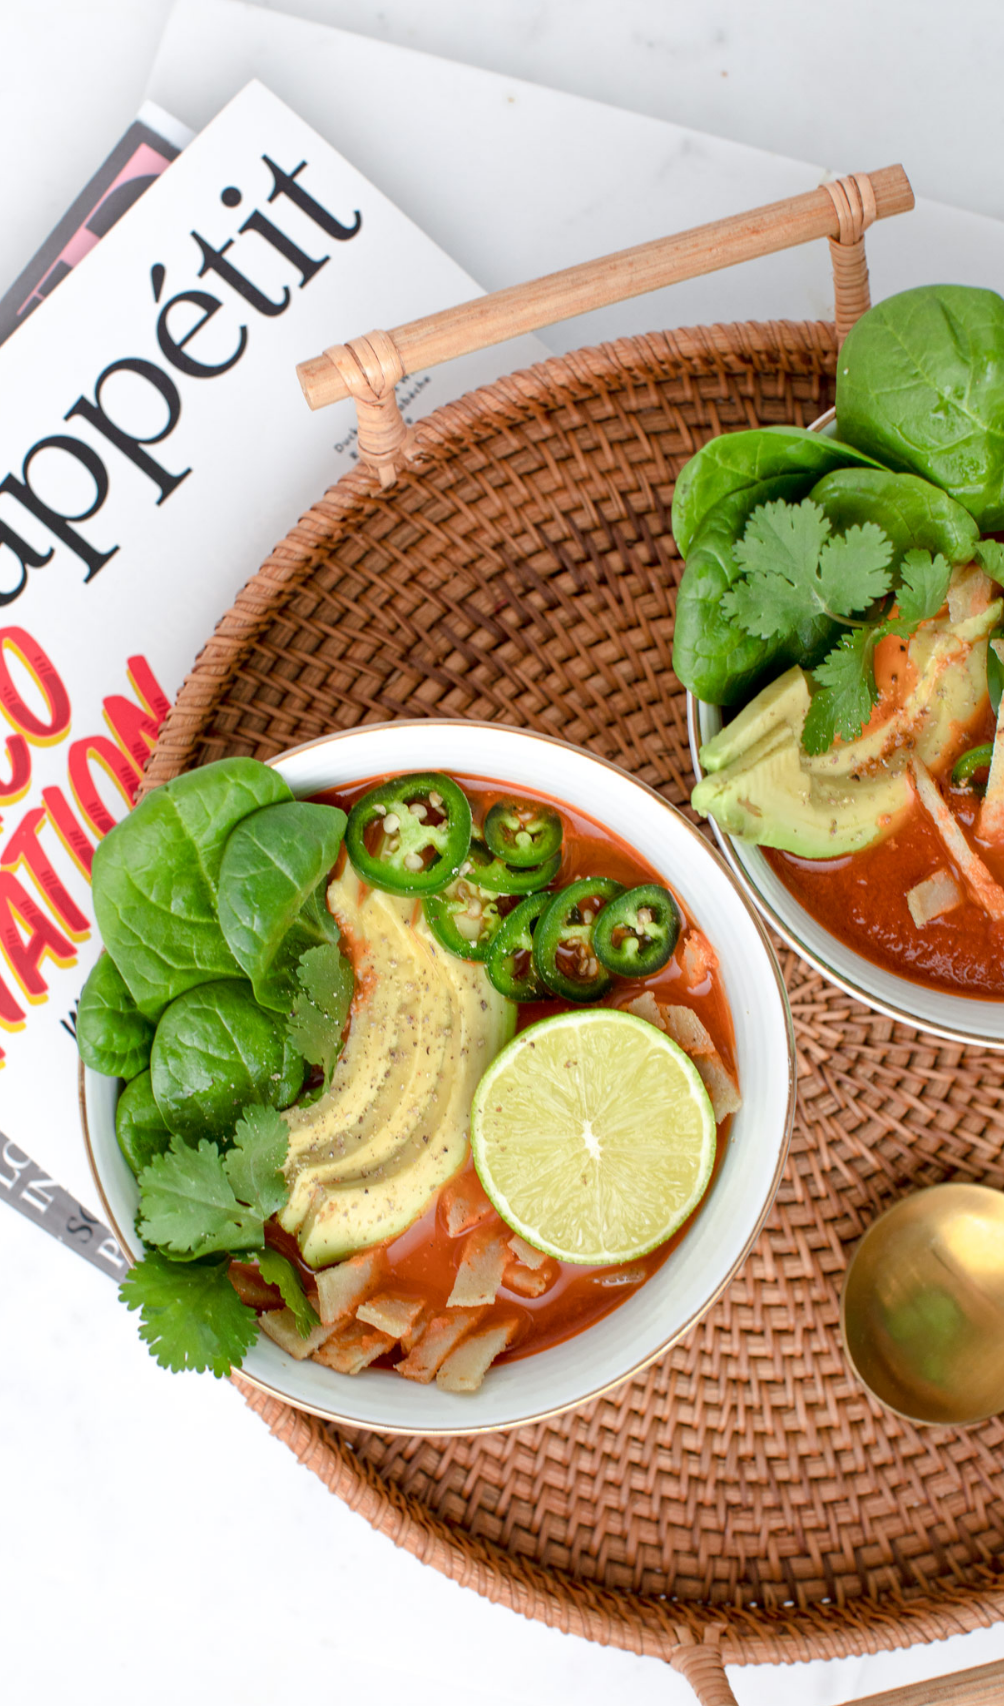 Mexican Tortilla soup with avocado, lime and cilantro by Bakd&Raw